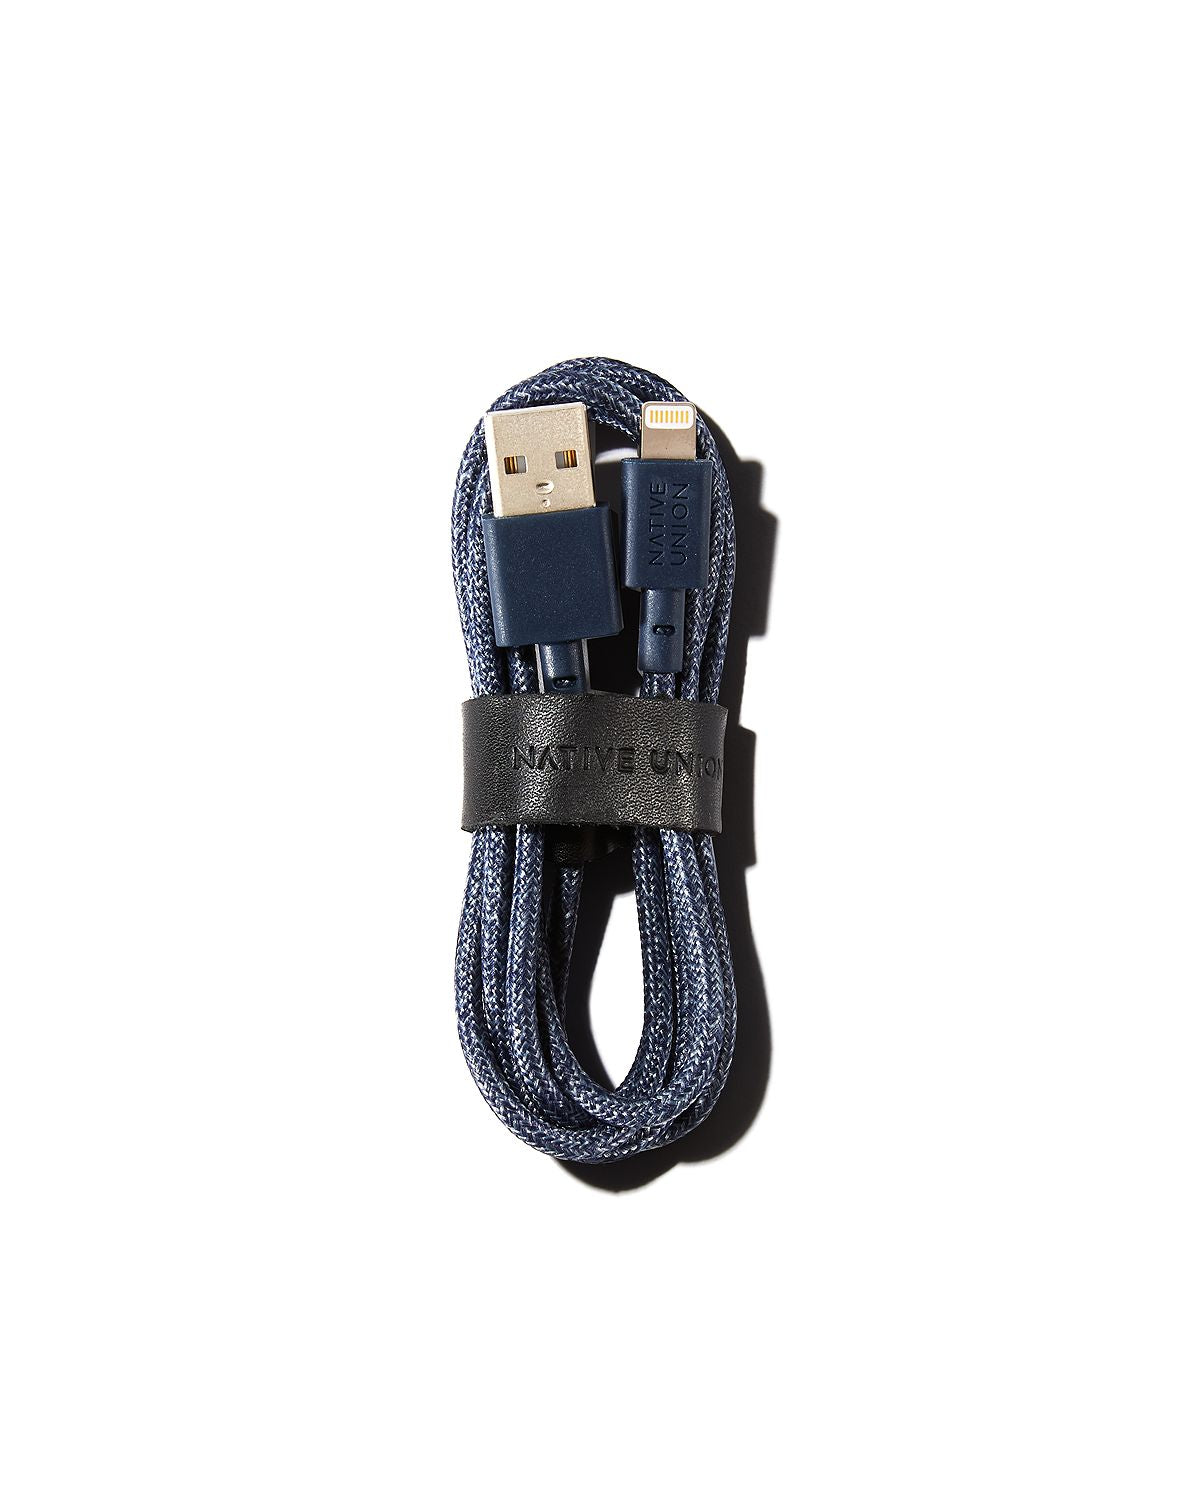 Native Union Cable Navy